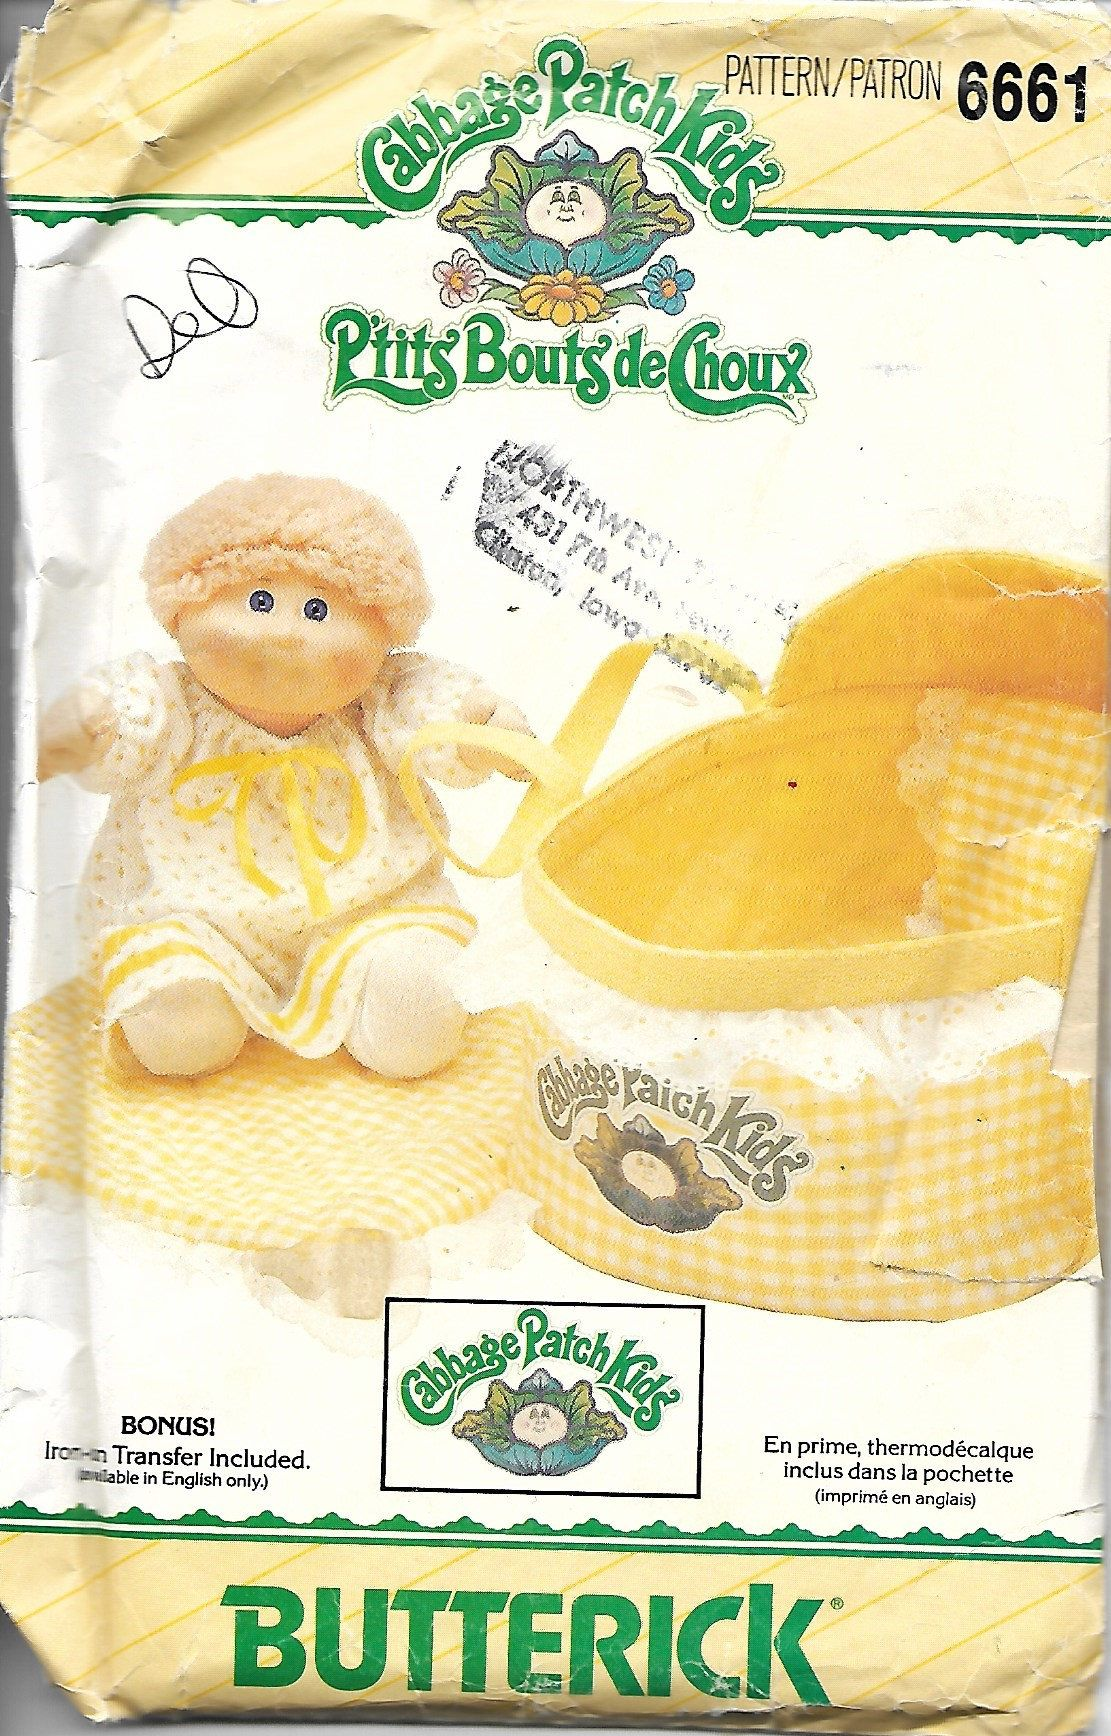 Butterick 6661 Cabbage Patch Kids Sewing Pattern, Doll Bed Carrier ...